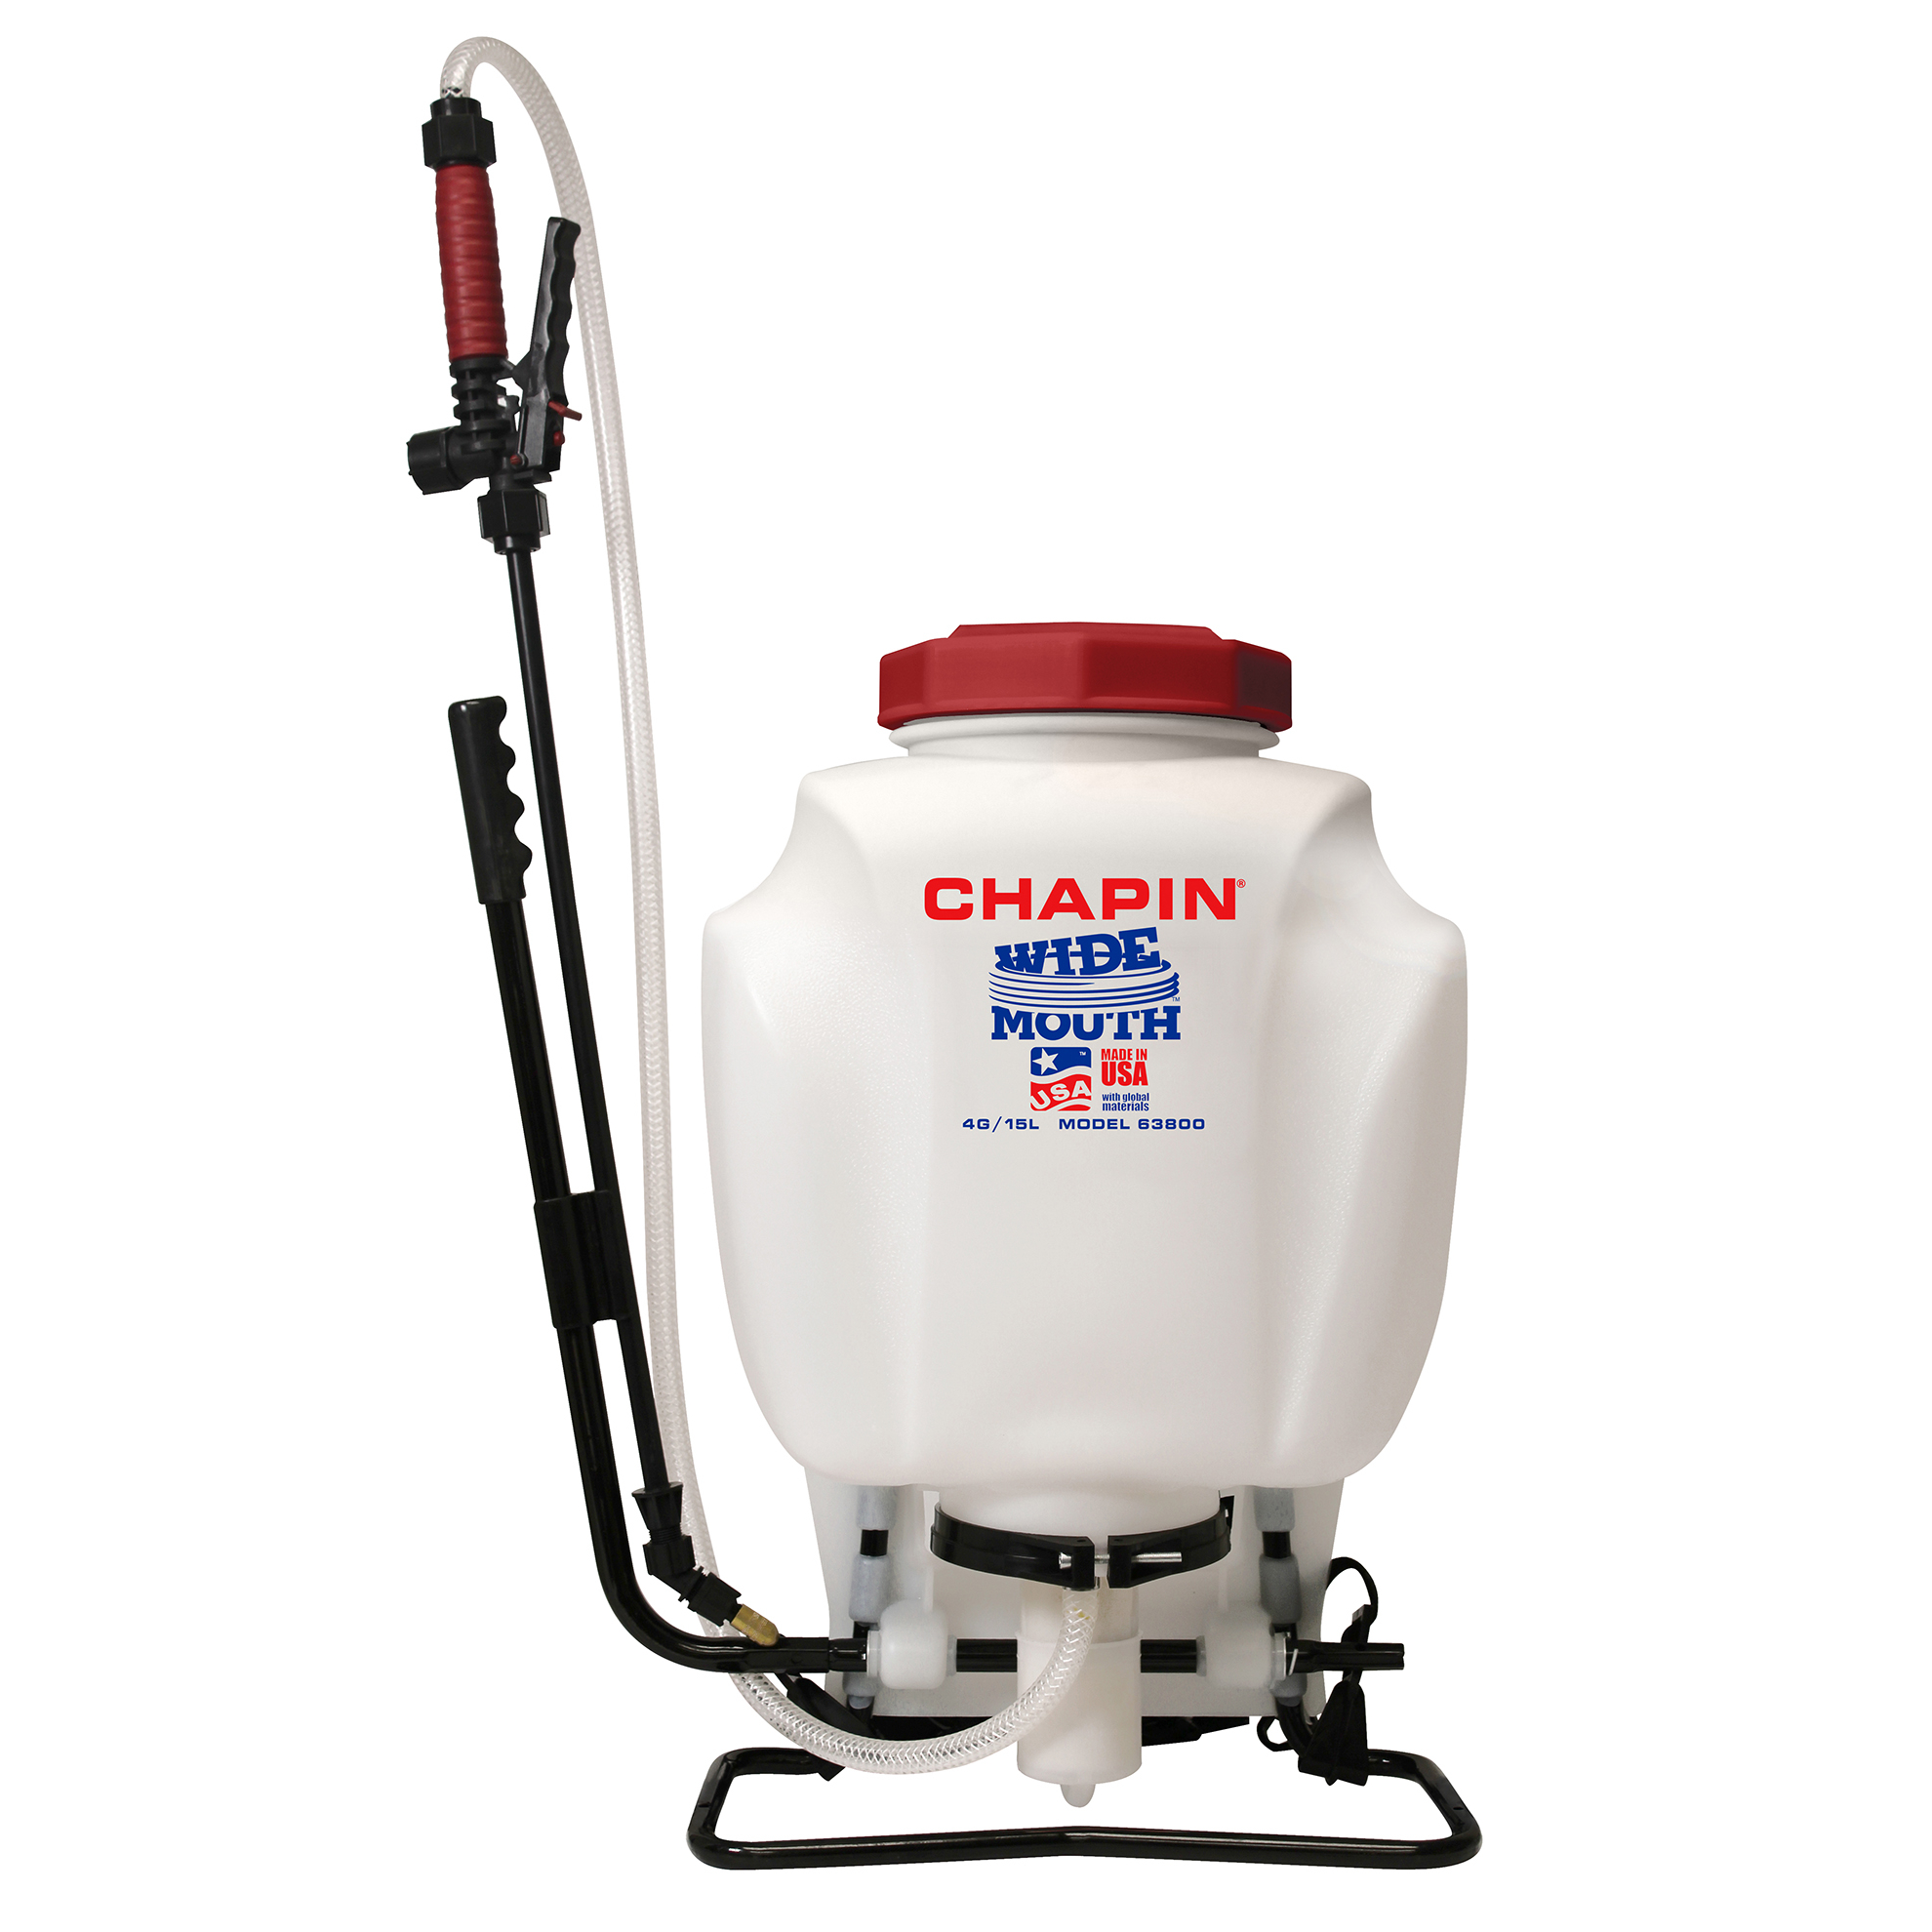 Chapin 63800 4 Gallon Wide Mouth Backpack Sprayer